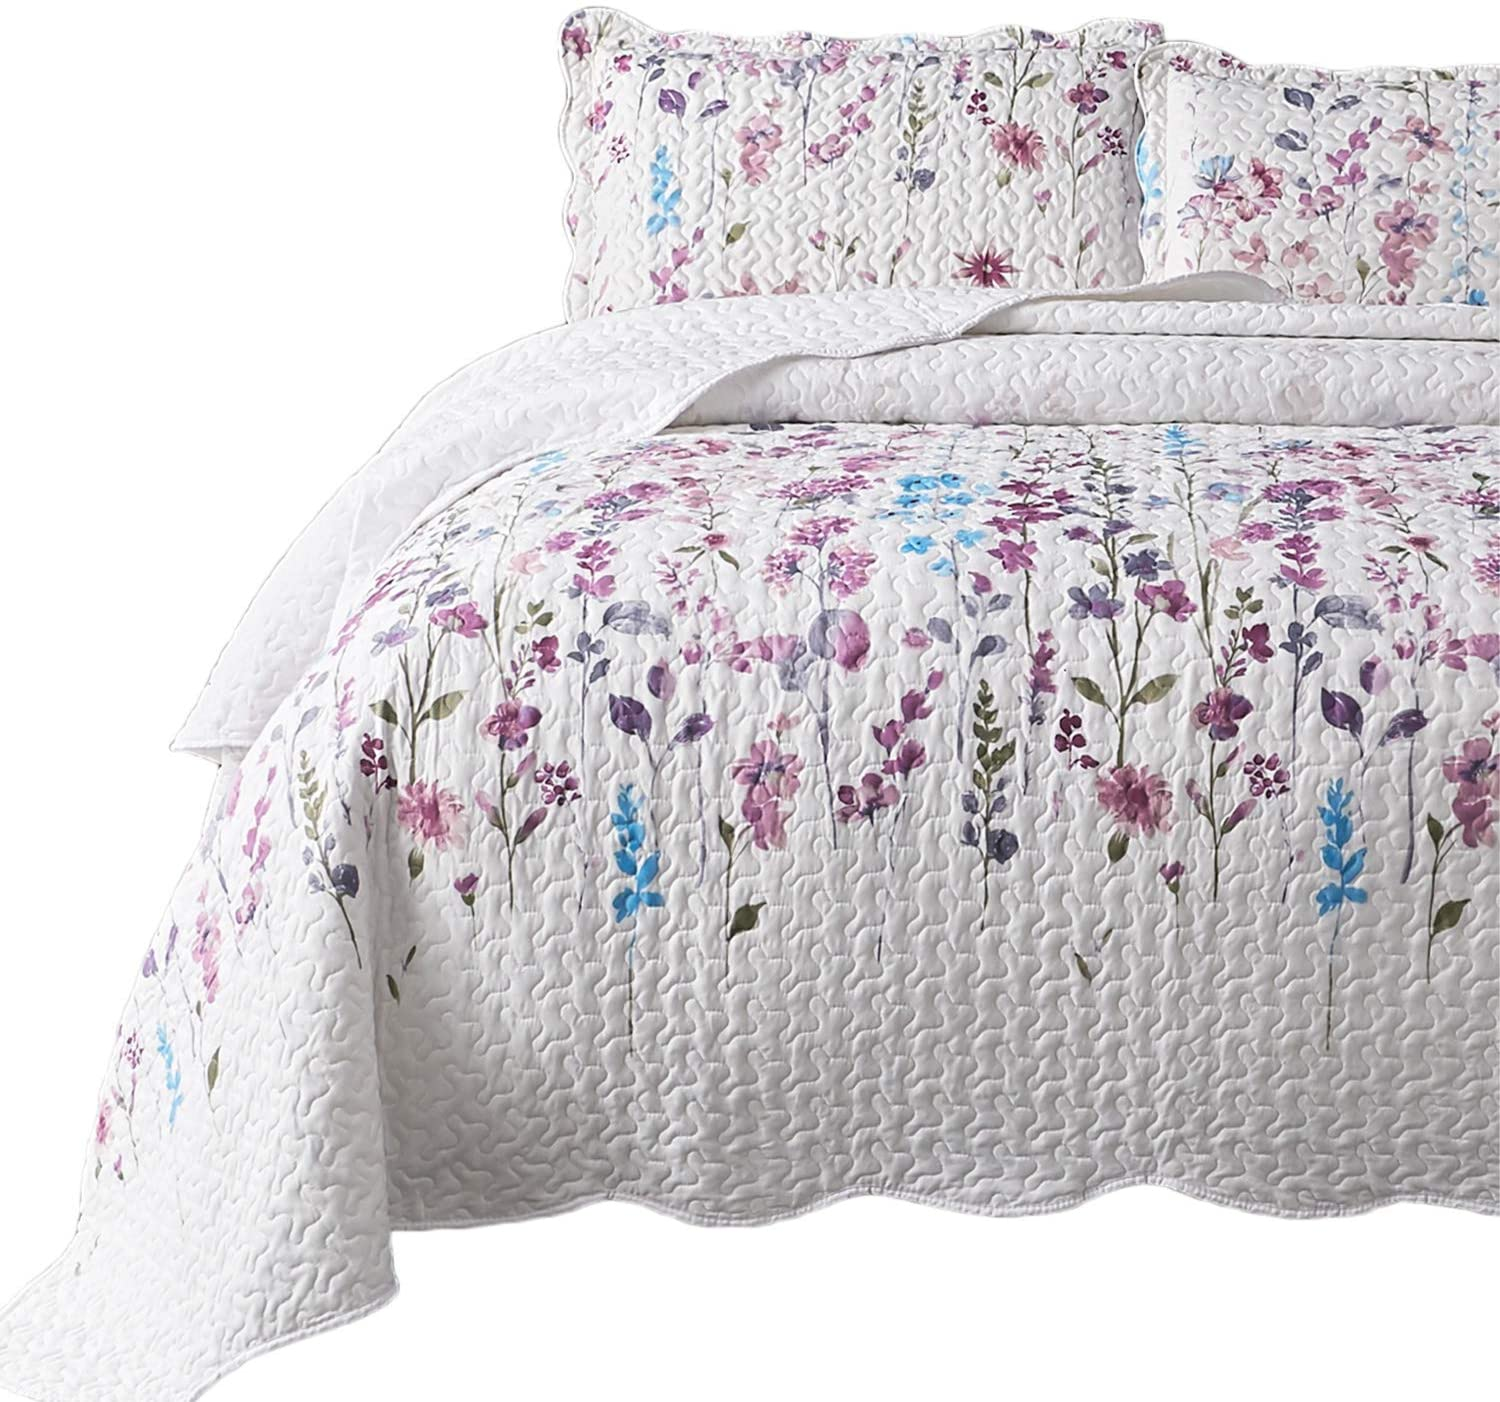 King size bed quilt by QuiltedDelight | Quilt bedding